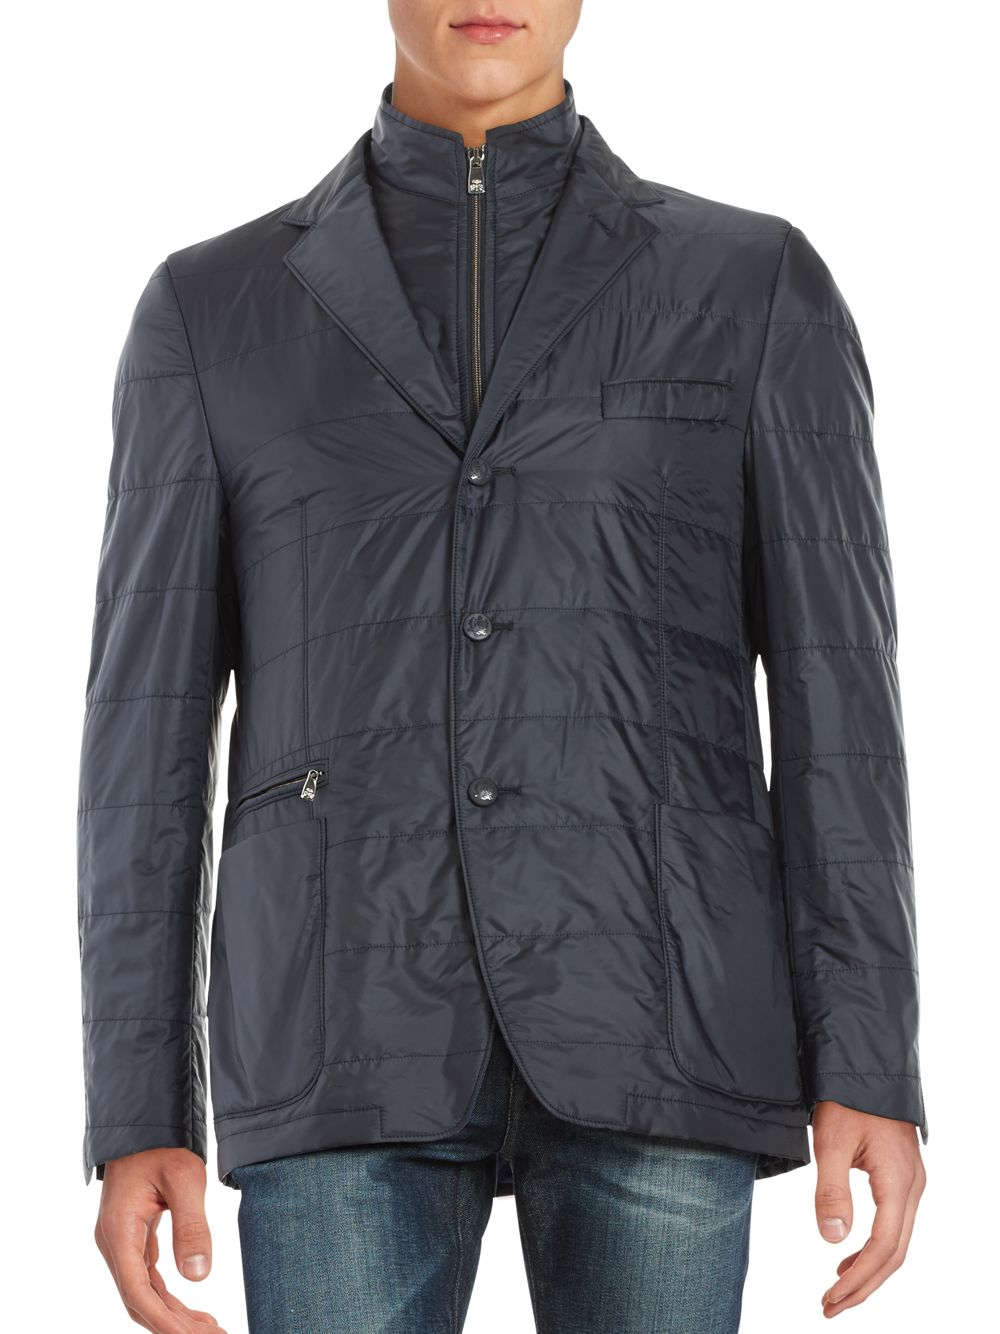 Corneliani Wool Blend Quilted Jacket In Gray For Men Lyst